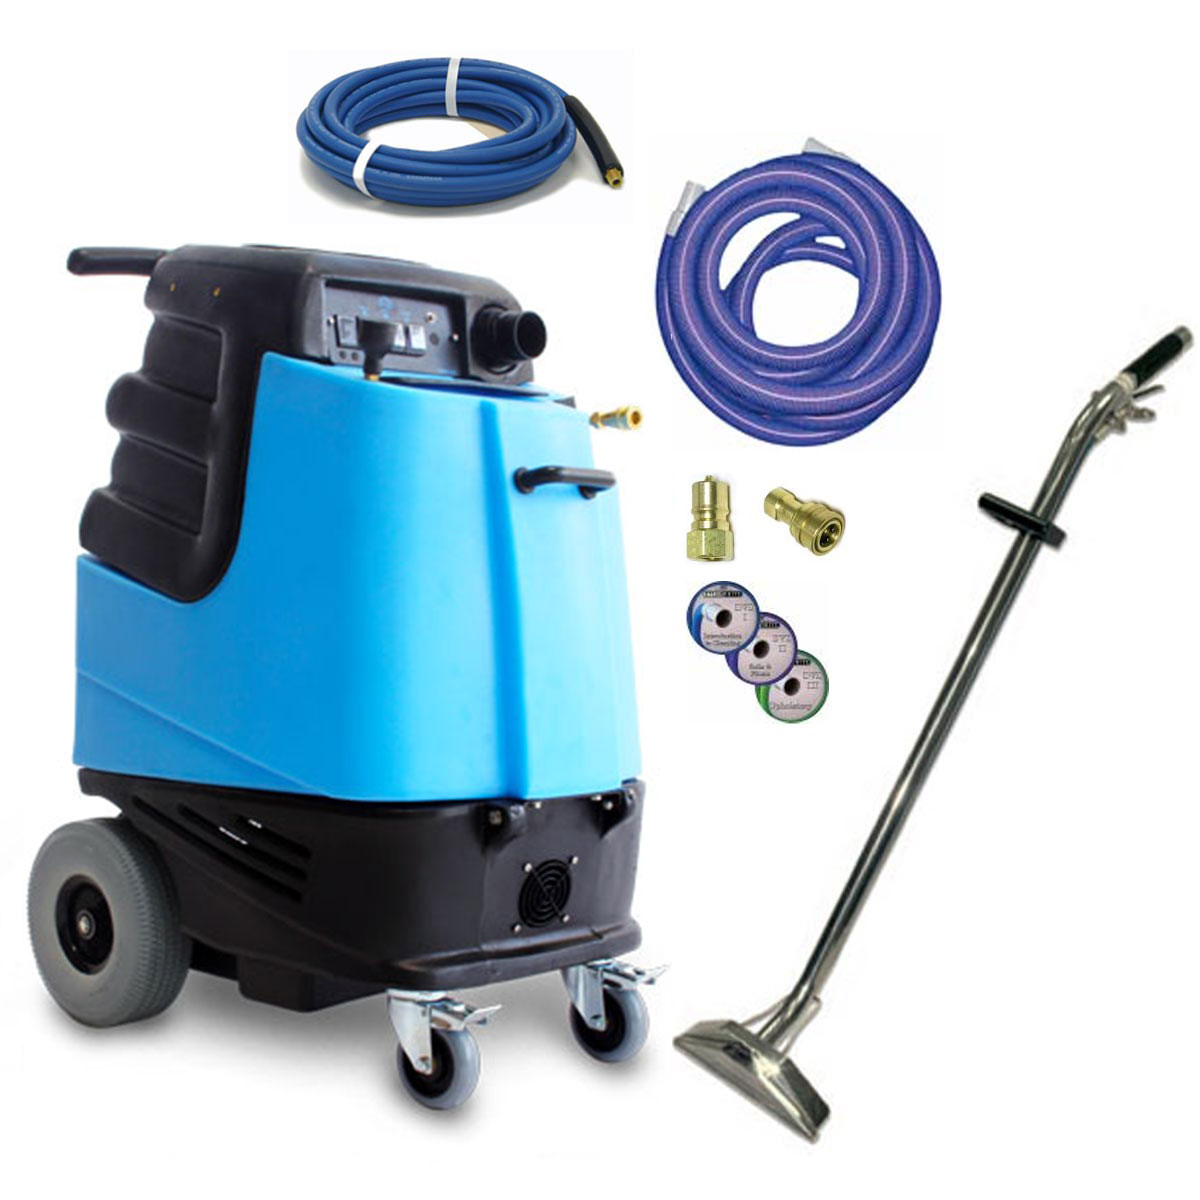 Mytee 1000DX-200 12gal 200psi Dual 2 Stage Vacs Carpet Upholstery Extractor Single Power Cord Hose Set Wand